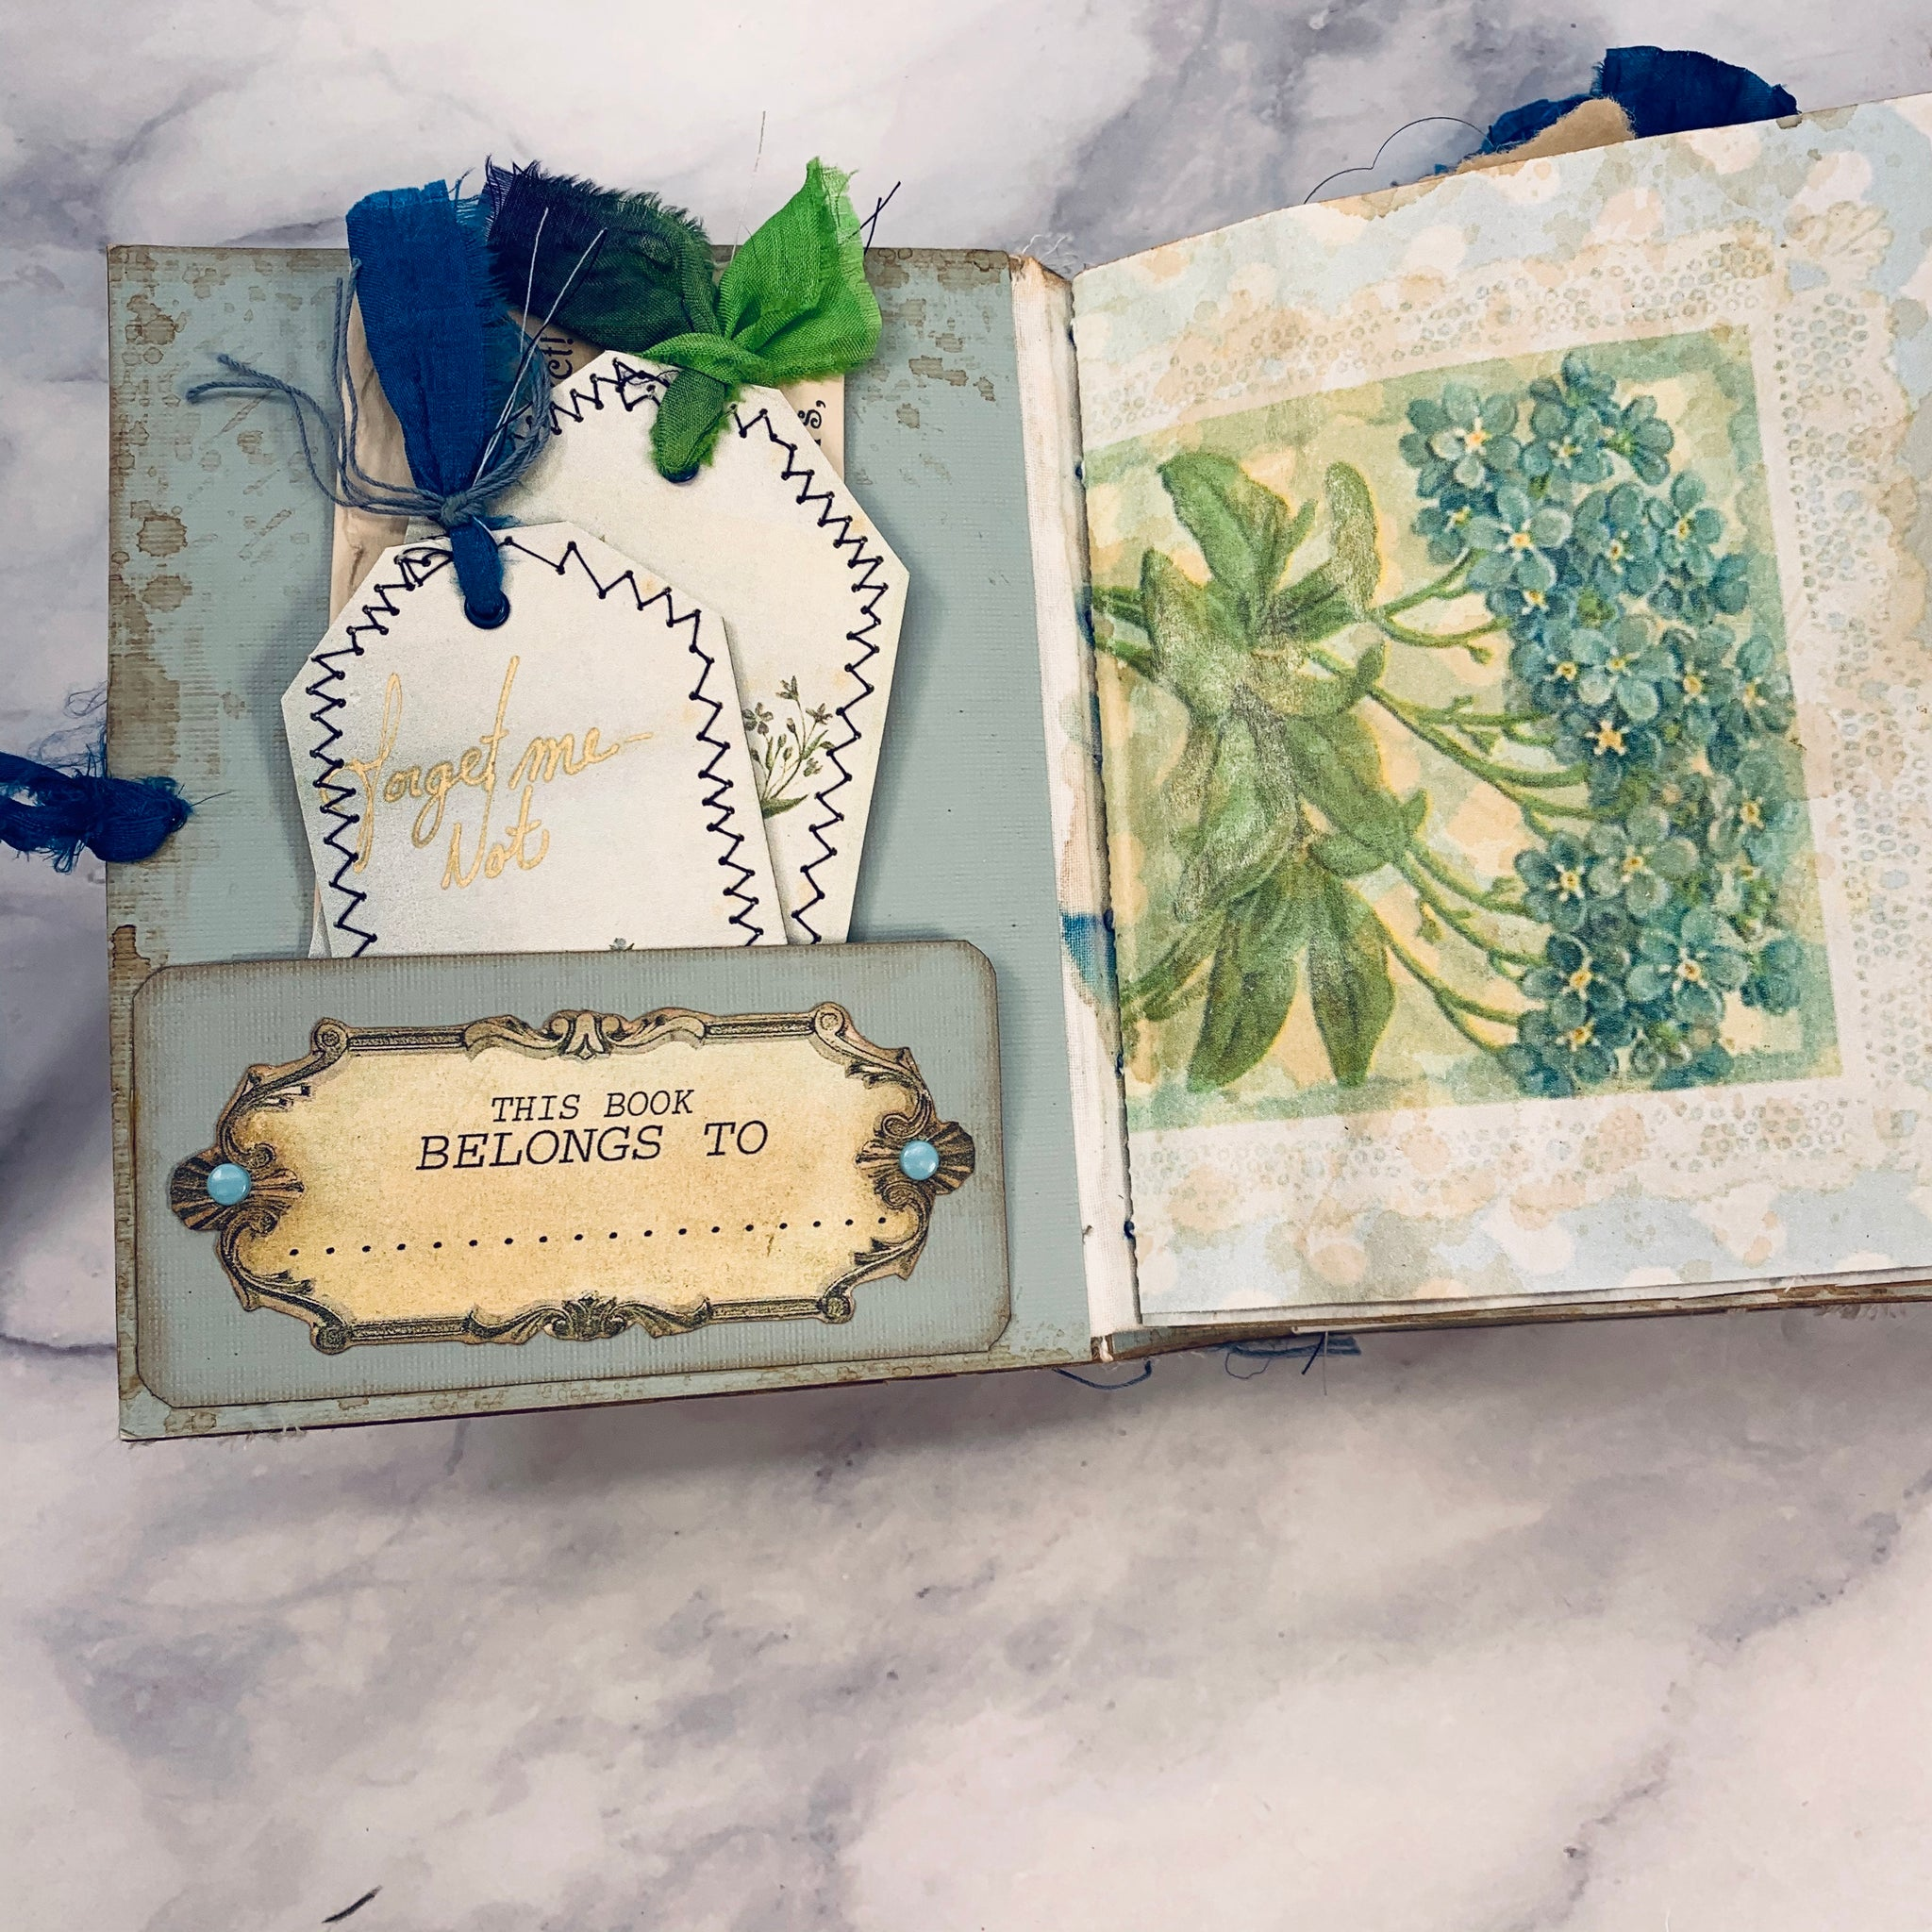 Forget Me Not Mini Junk Journal by Frances Serpa